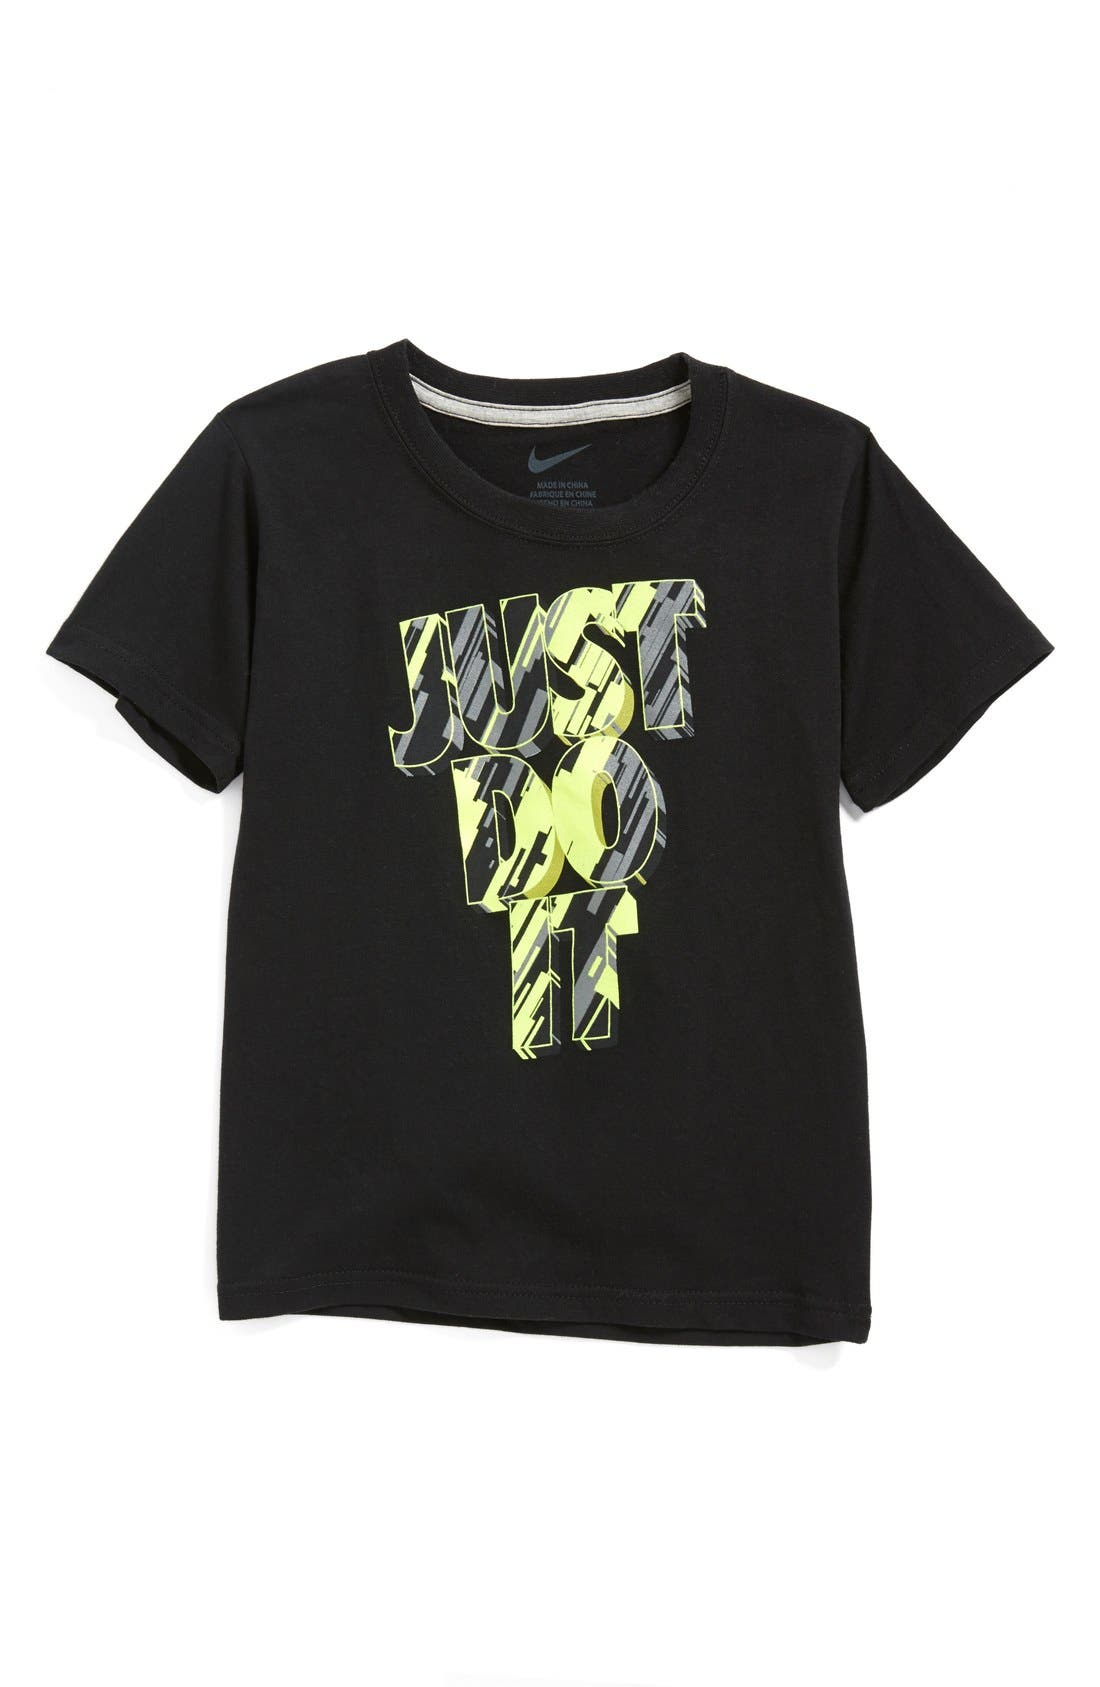 Main Image - Nike 'Just Do It' T-Shirt (Little Boys)